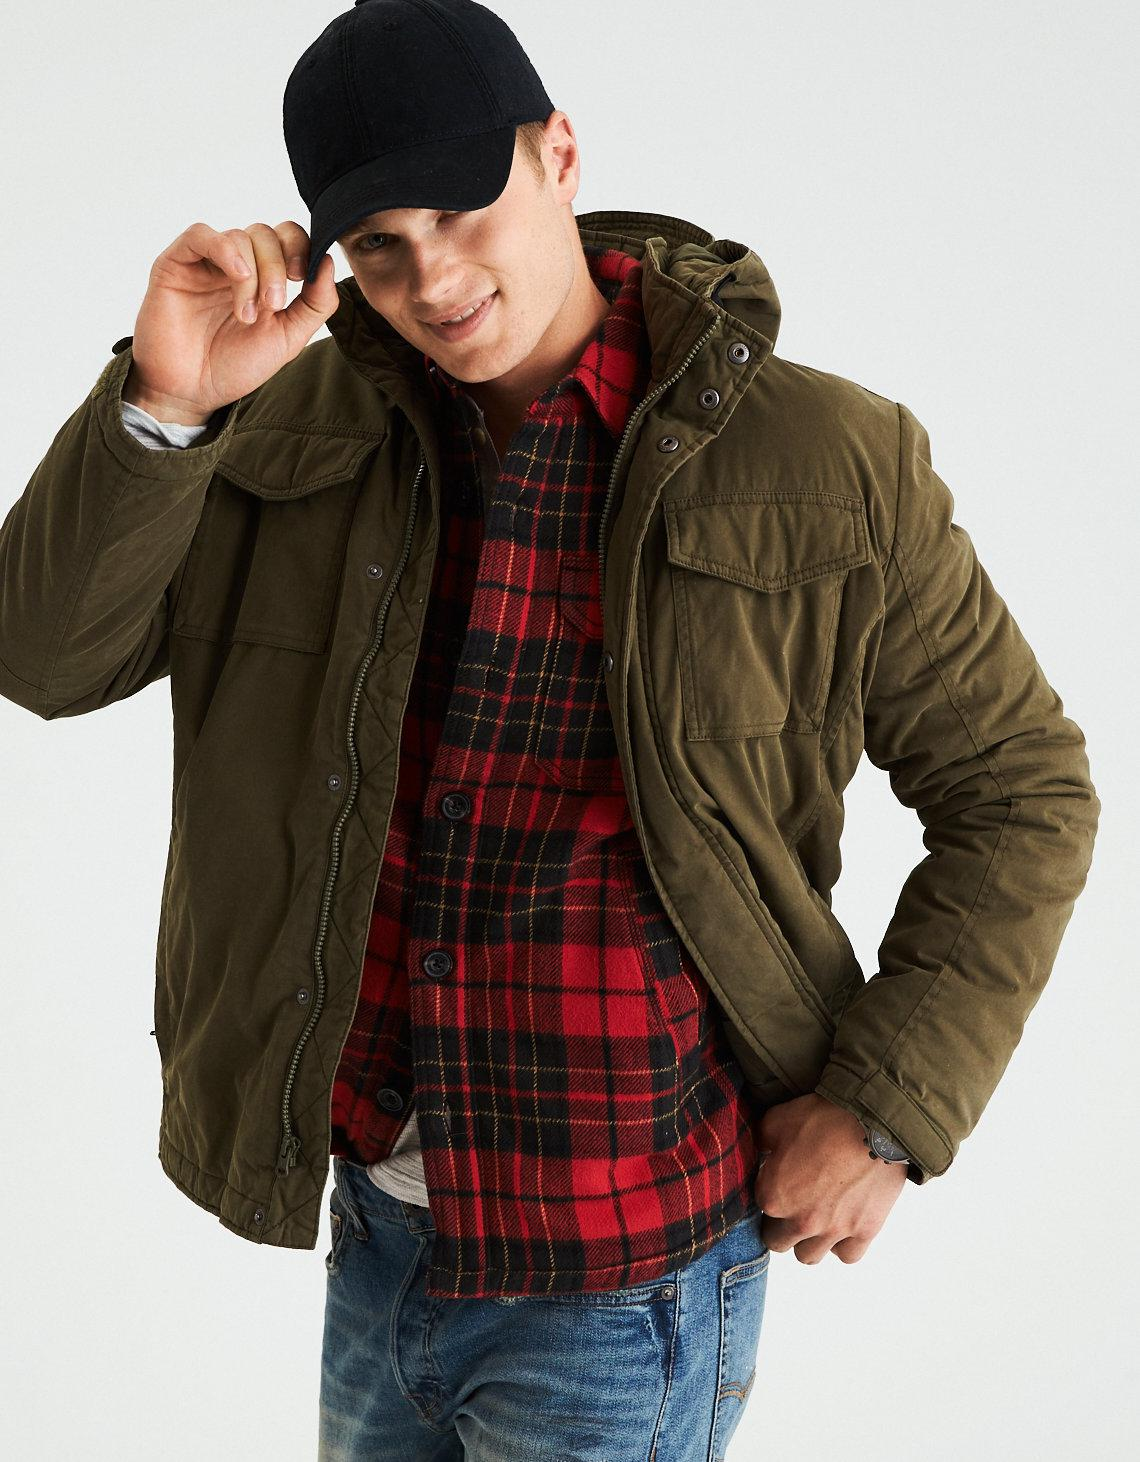 Rakuten Chions Victory Memorial セールアメリカンイーグル Men S Military Jacket Ae Olive 2101 9427 Xs M L Xl